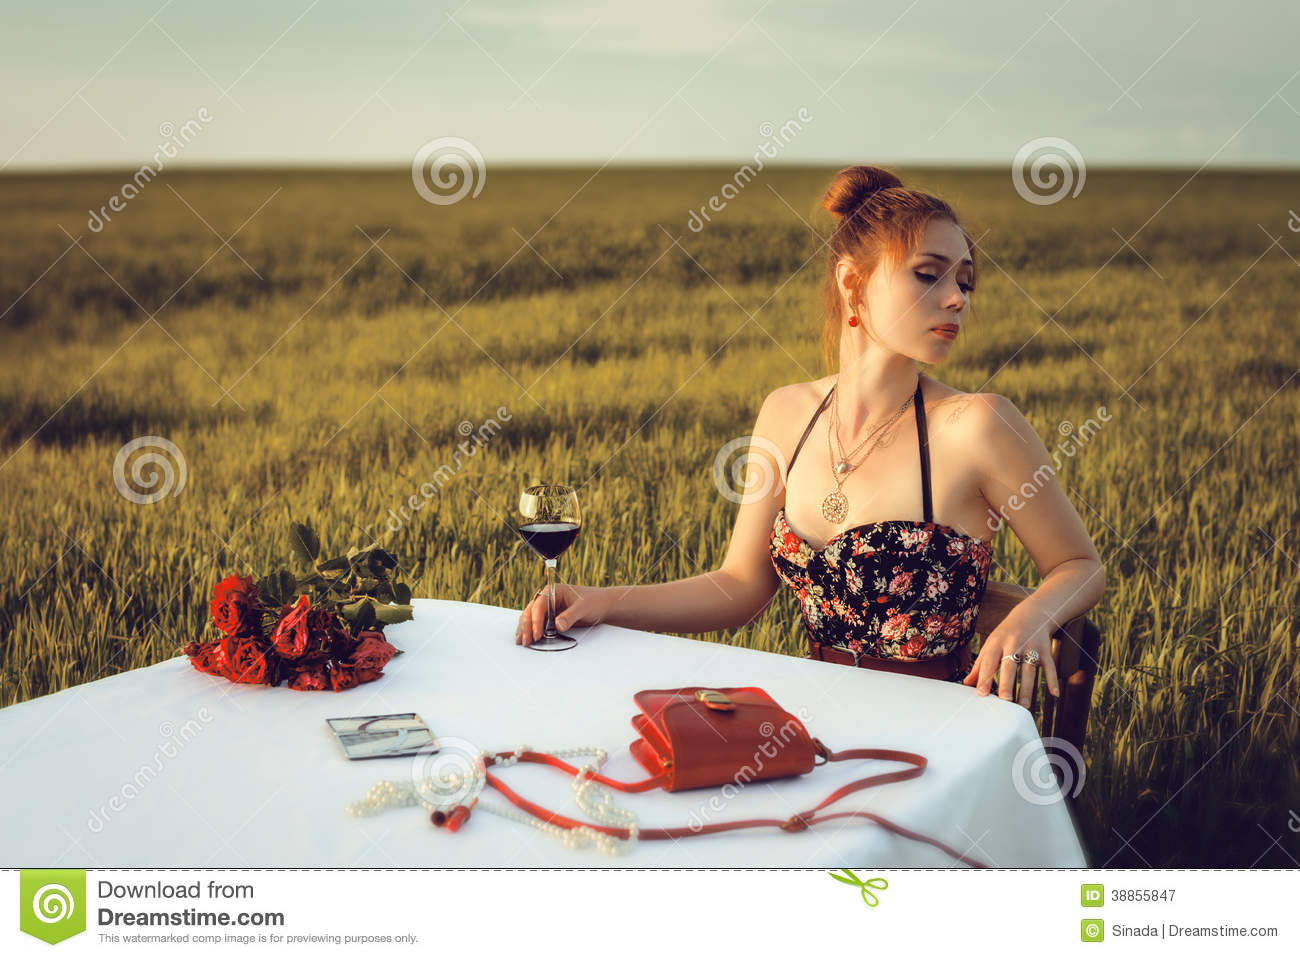 Lonely woman dinner